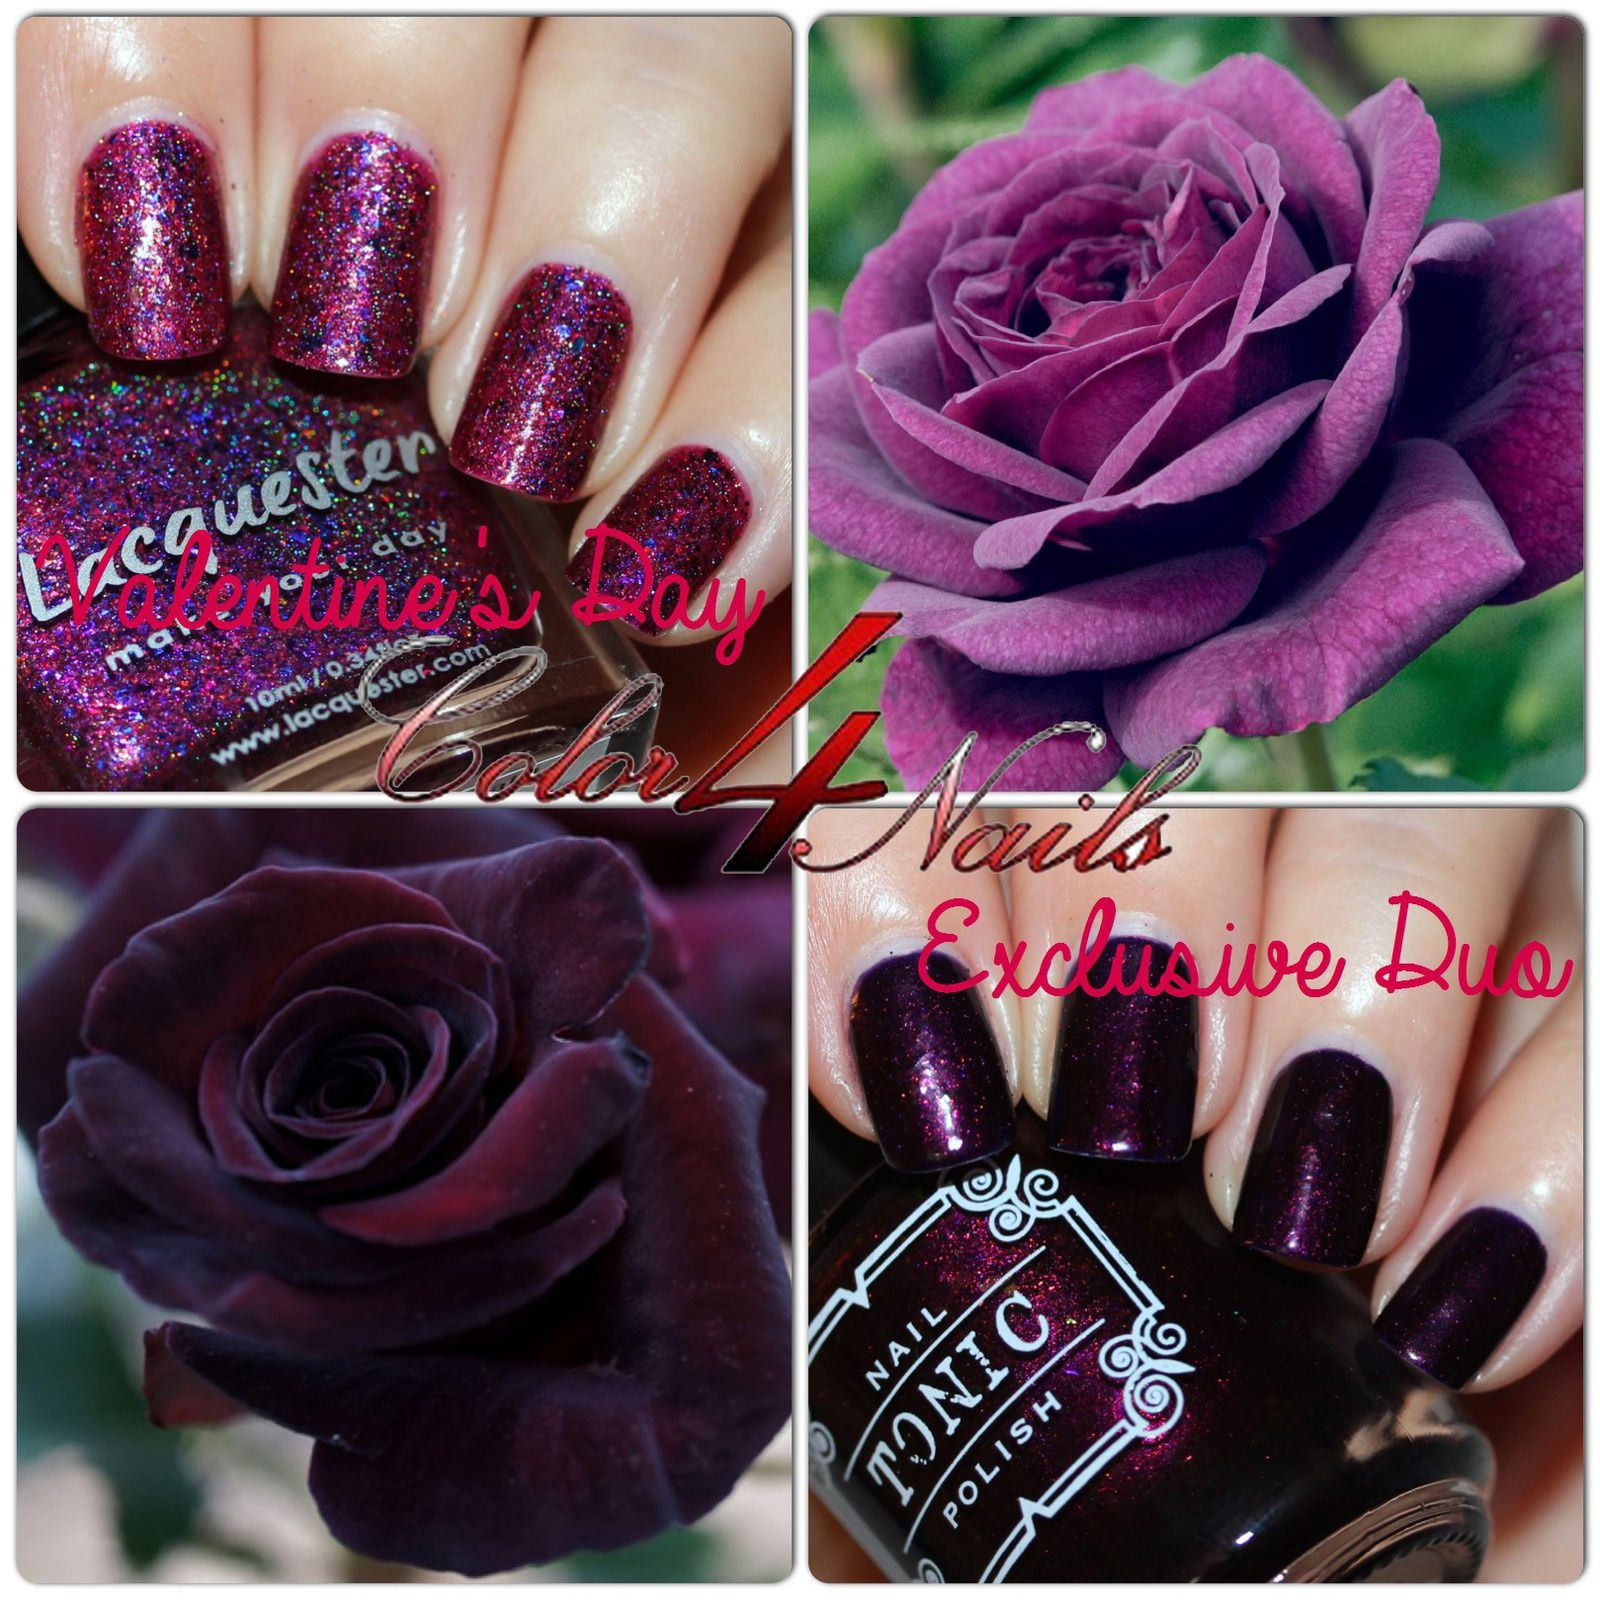 Tonic Polish & Lacquester Color4Nails Valentine's Day Exclusive Duo